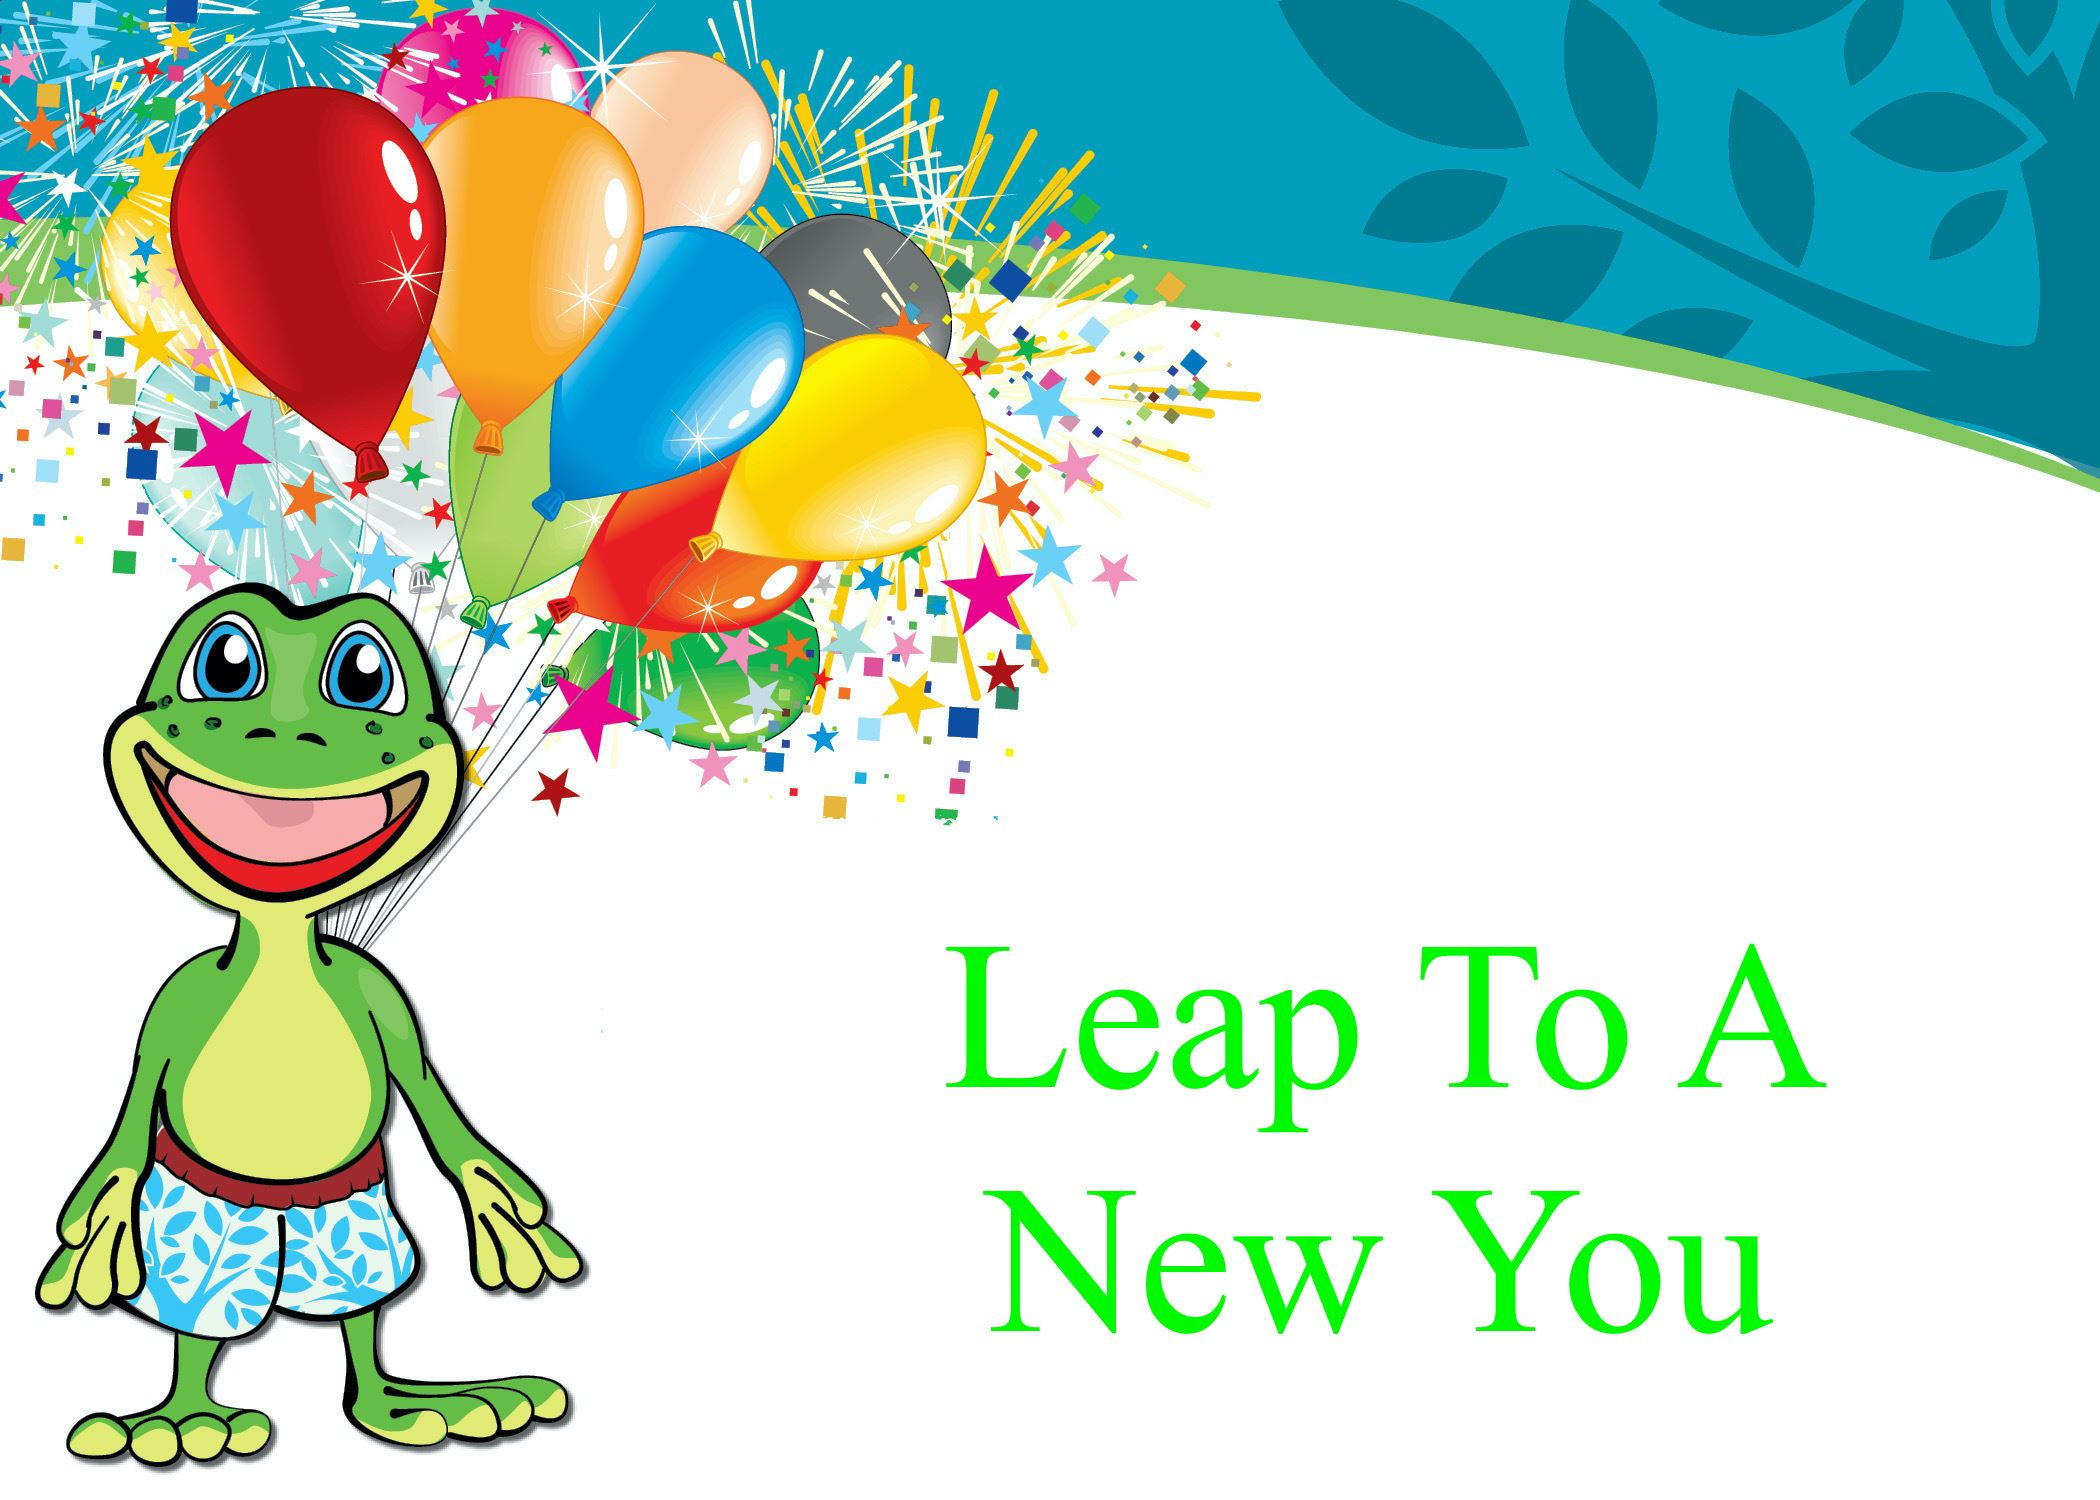 Leap to a New Year